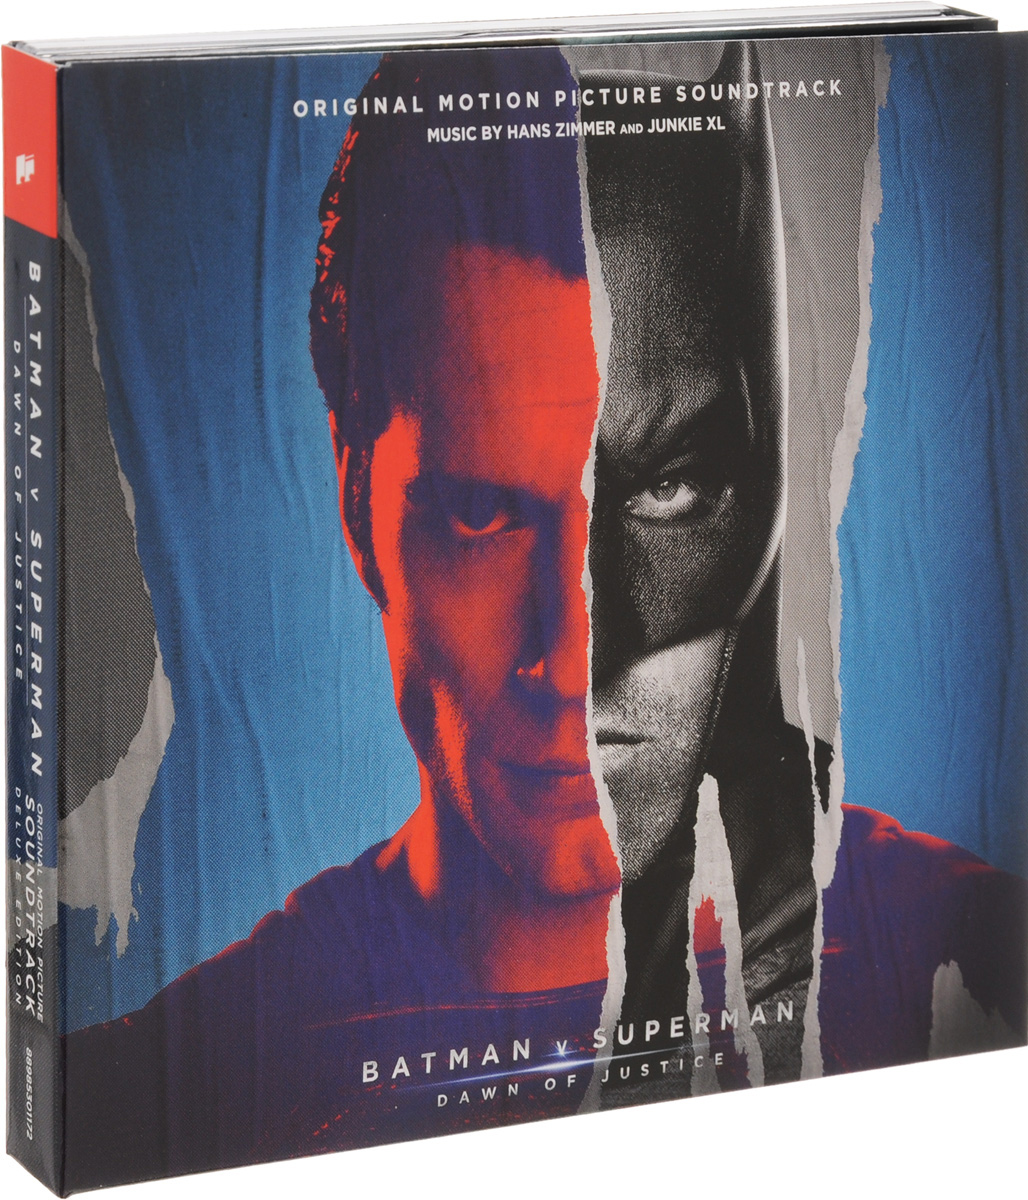 Hans Zimmer, Junkie XL. Batman V Superman. Dawn Of Justice. Original Motion Picture Soundtrack. Deluxe Edition (2 CD) hans zimmer hans zimmer live in prague 4 lp